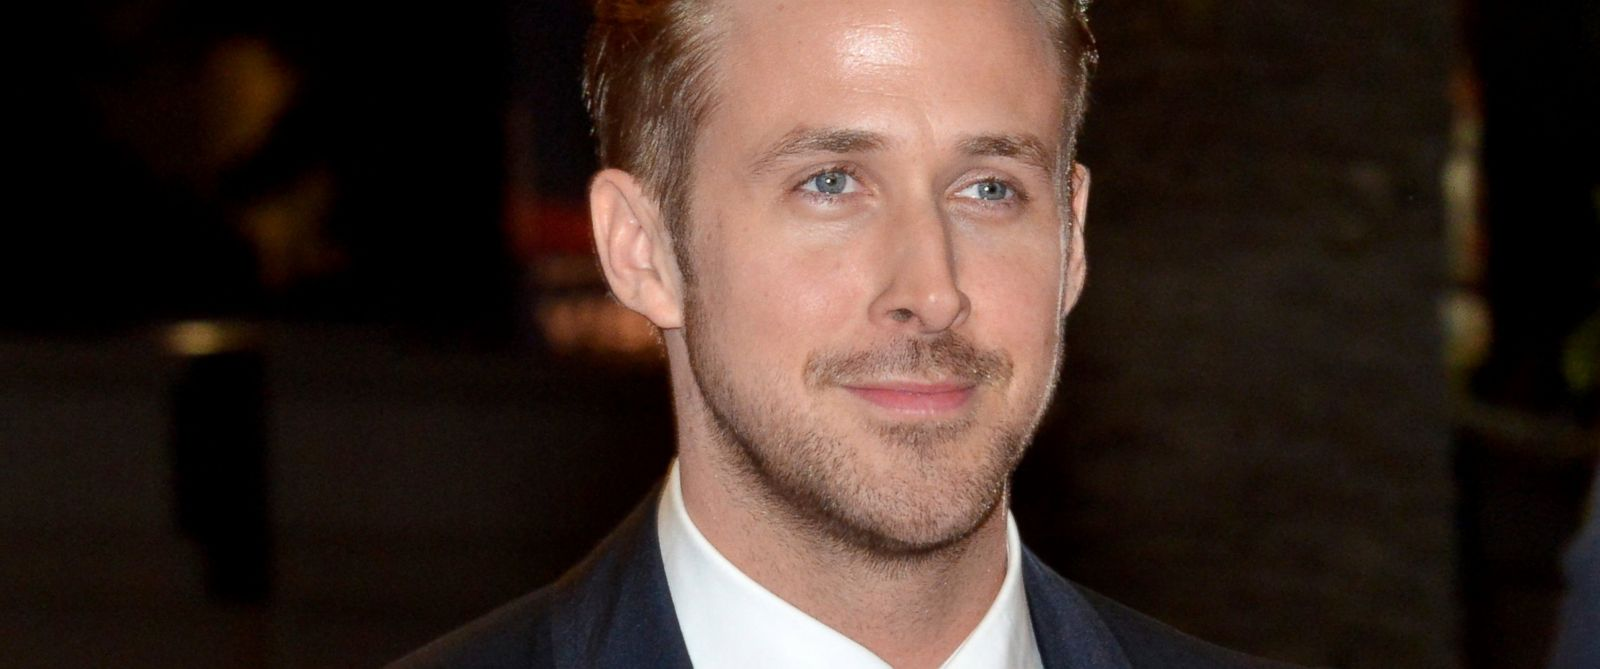 PHOTO: Ryan Gosling attends the Lost River premiere during the 67th Annual Cannes Film Festival, May 20, 2014, in Cannes, France.